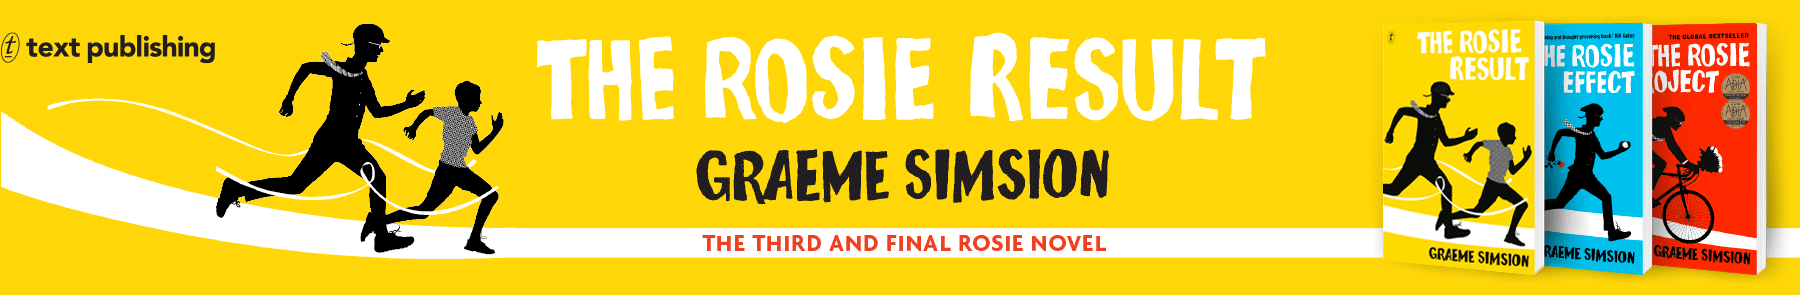 The-Rosie-Result-Header-7.png